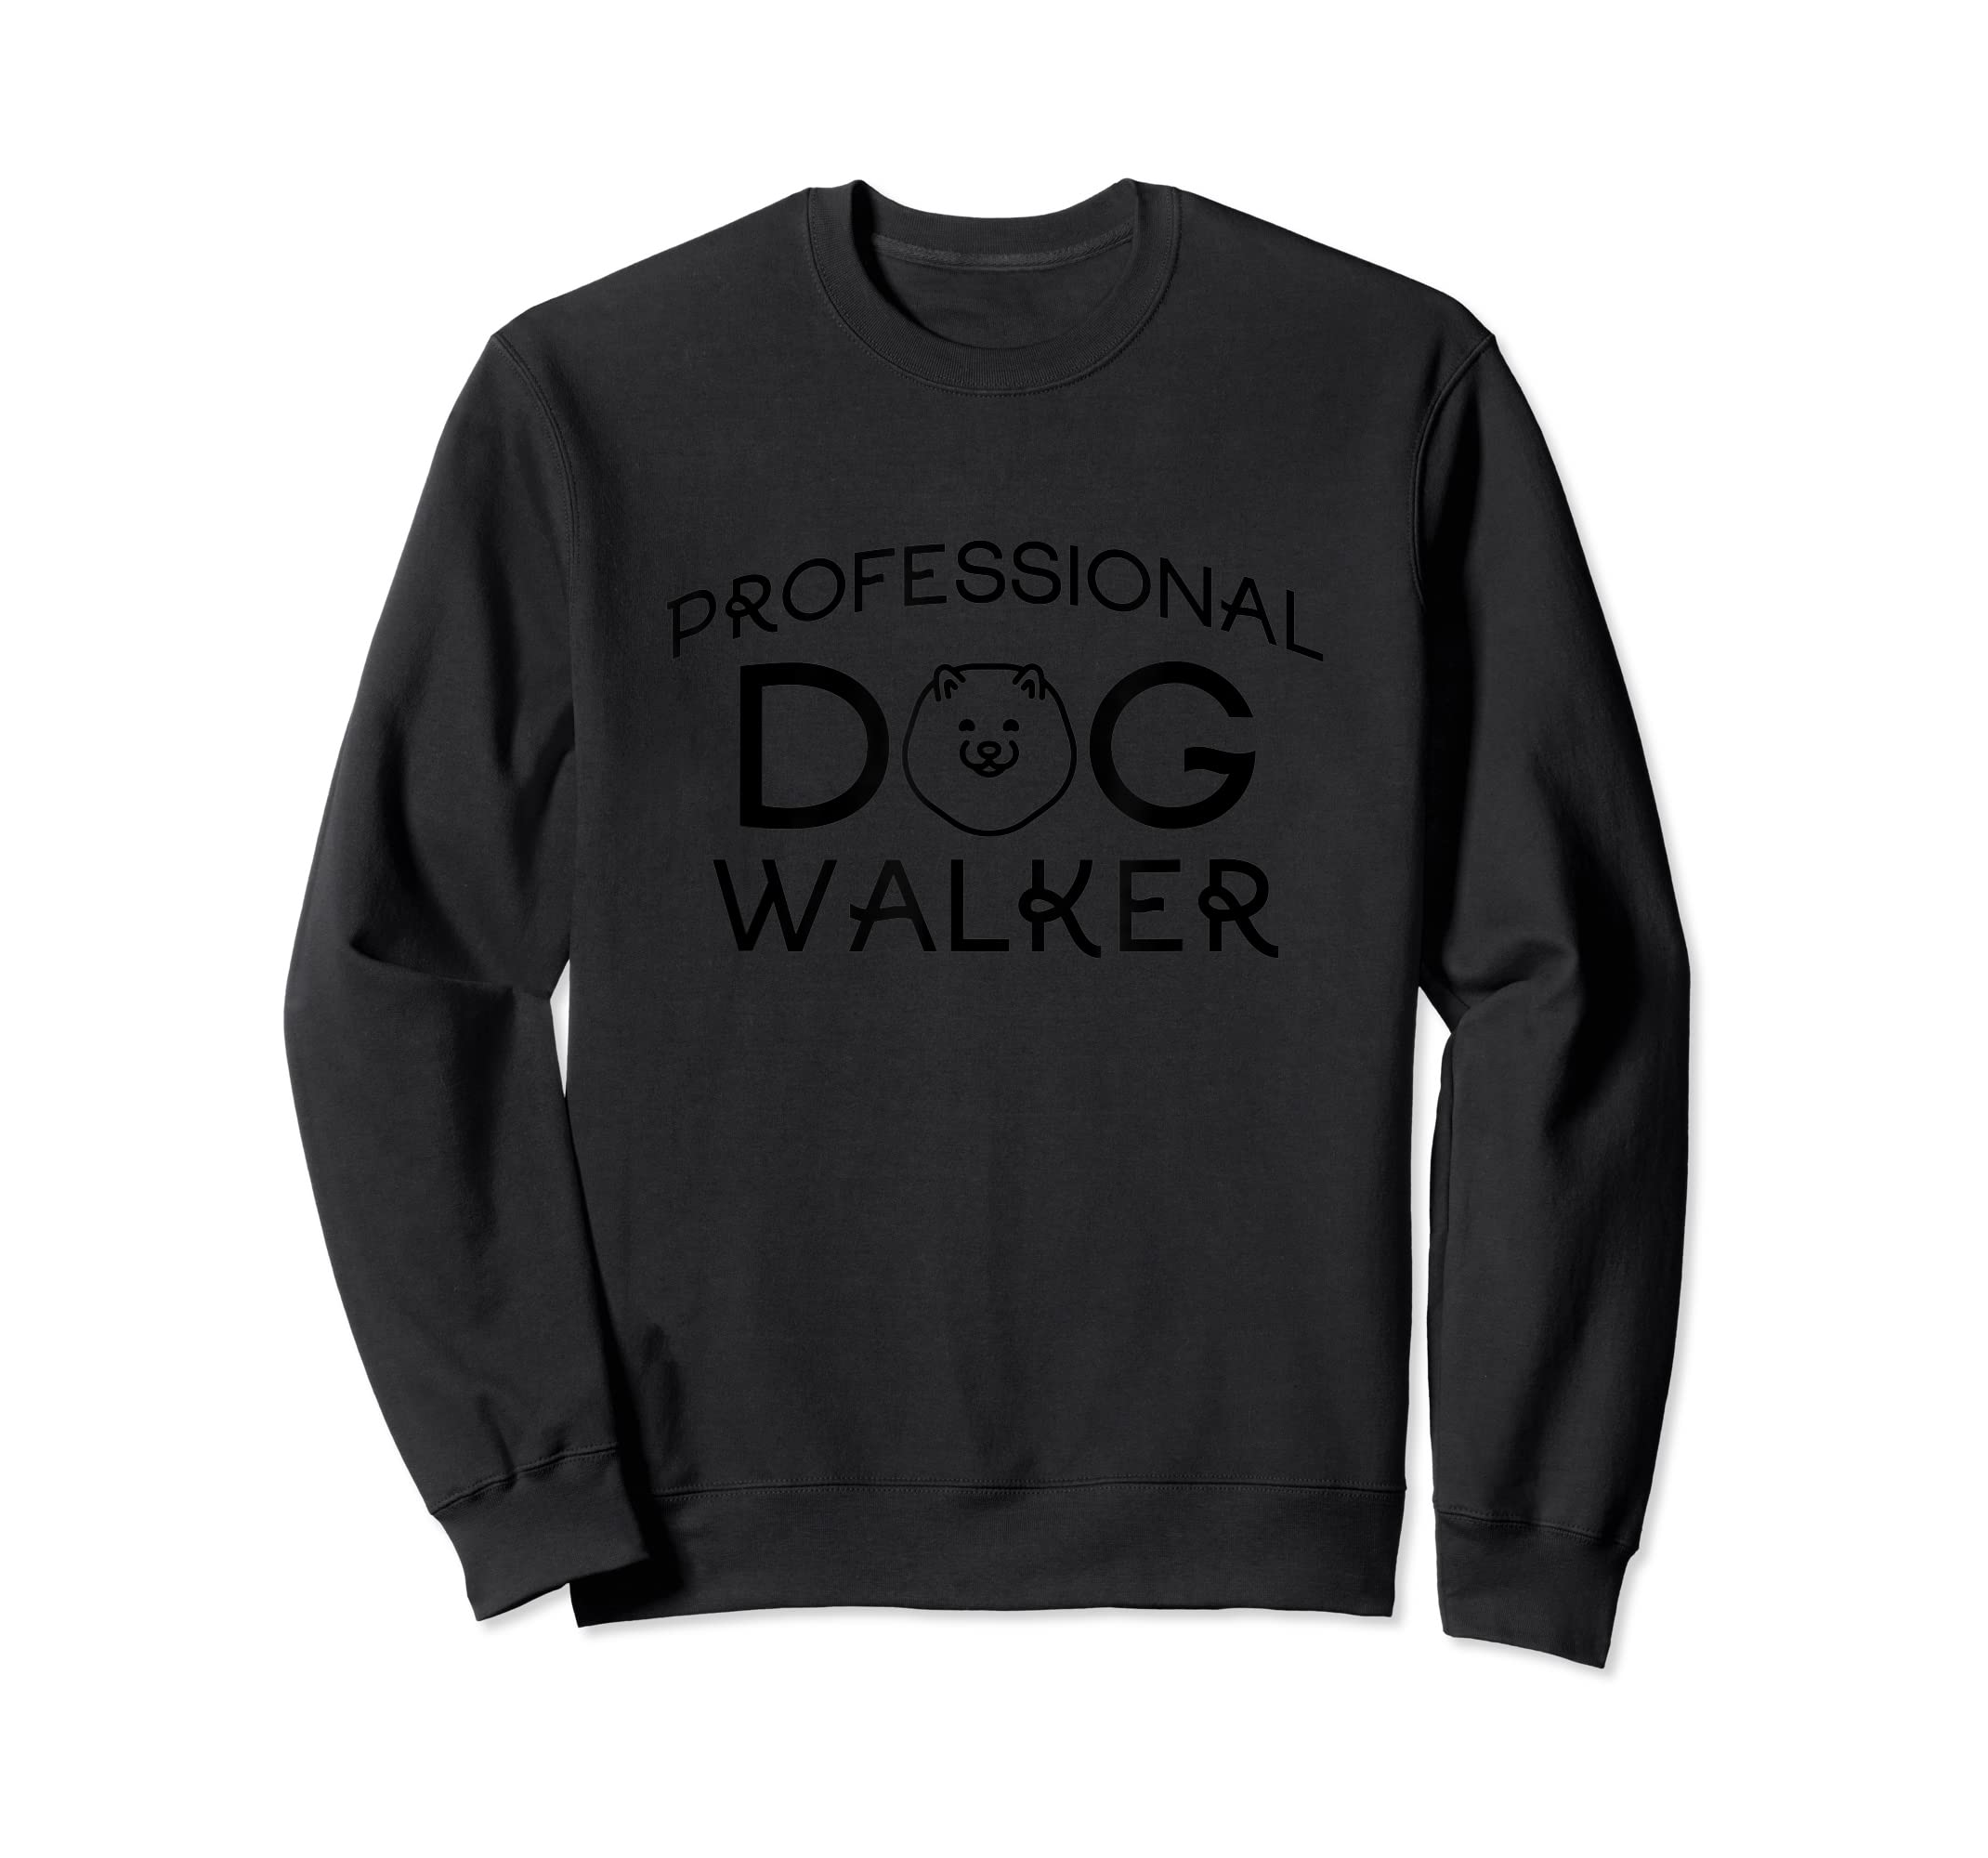 Professional Dog Walker Cute Puppy Tshirt Pet Lover T-Shirt-Sweatshirt-Black